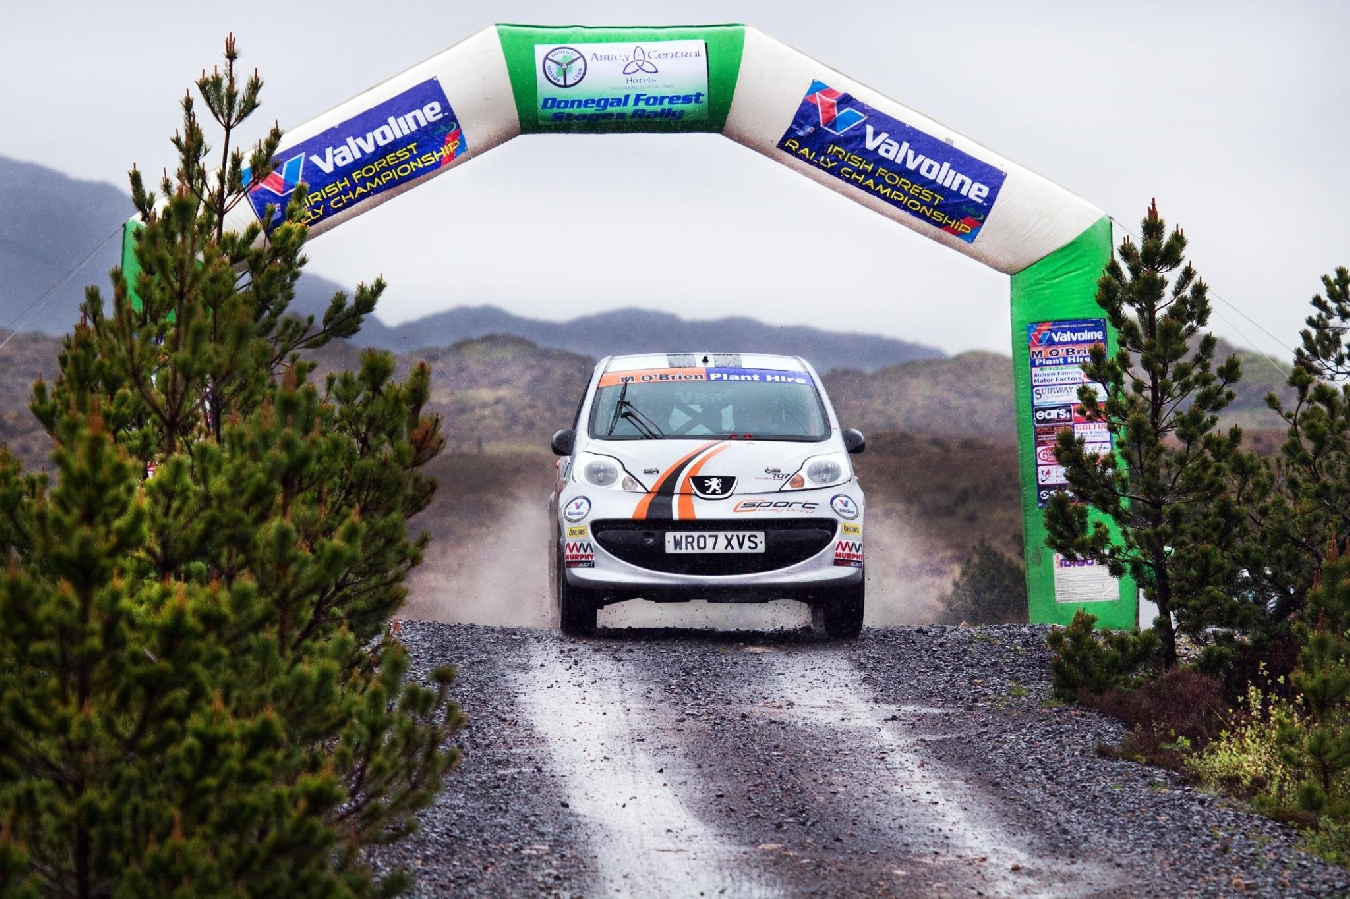 Round 4 2019 Donegal Forest Rally